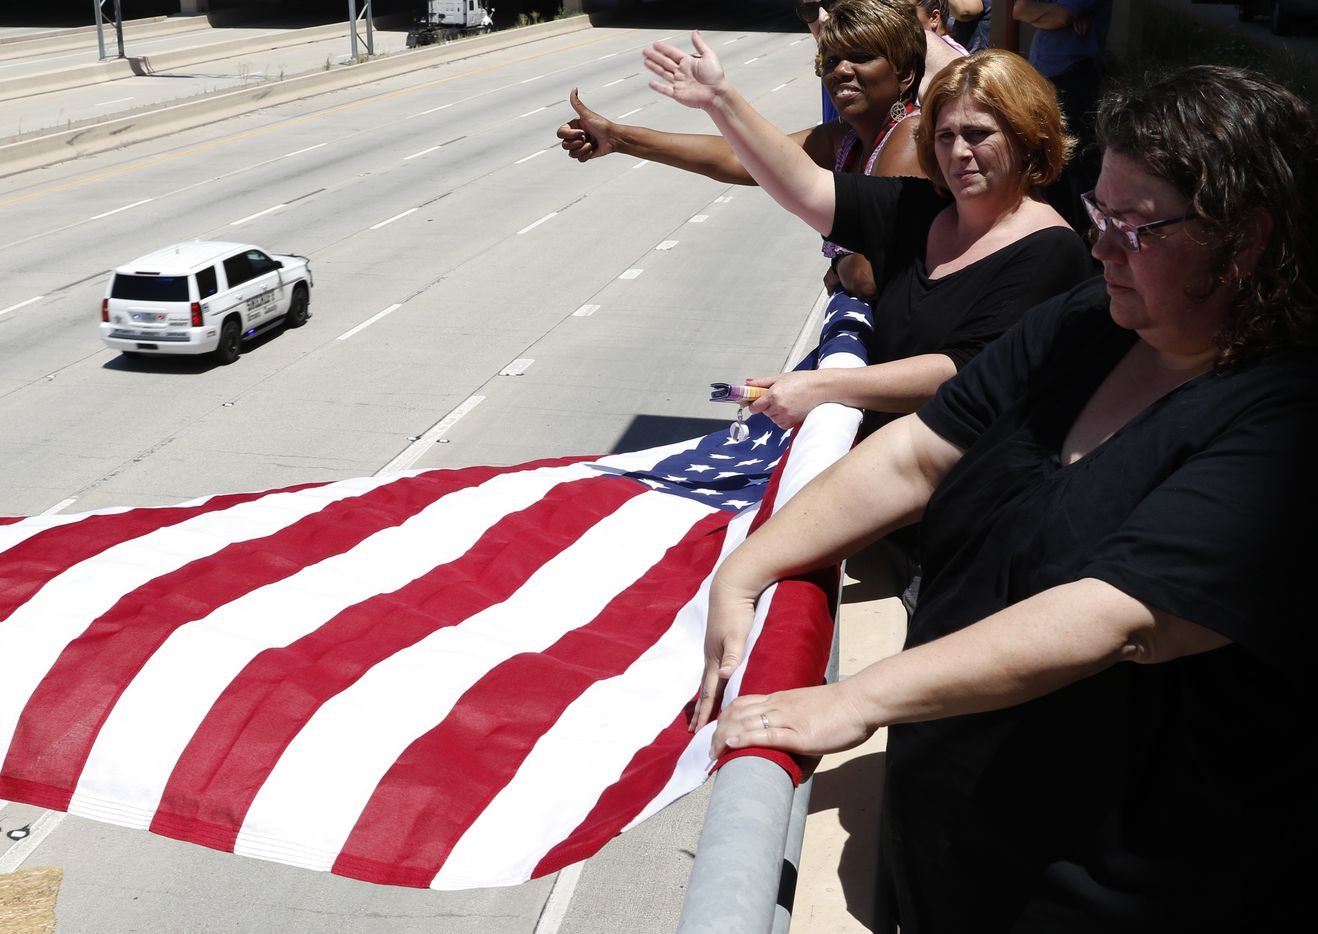 From left, Sandra Forte, Shelly Hughes, Pam Holt and other employees from SBB Management Company wave and give thumbs up to passing police vehicles as they proceed east on Interstate 635 to Restland Funeral Home, where Dallas police sergeant Michael Smith will be buried, on Thursday, July 14, 2016 close to TI Blvd in Dallas, Texas. Smith was one of five officers who were killed on Thursday, July 7, 2016, when a gunman targeted police during a Black Lives Matter rally in downtown Dallas.